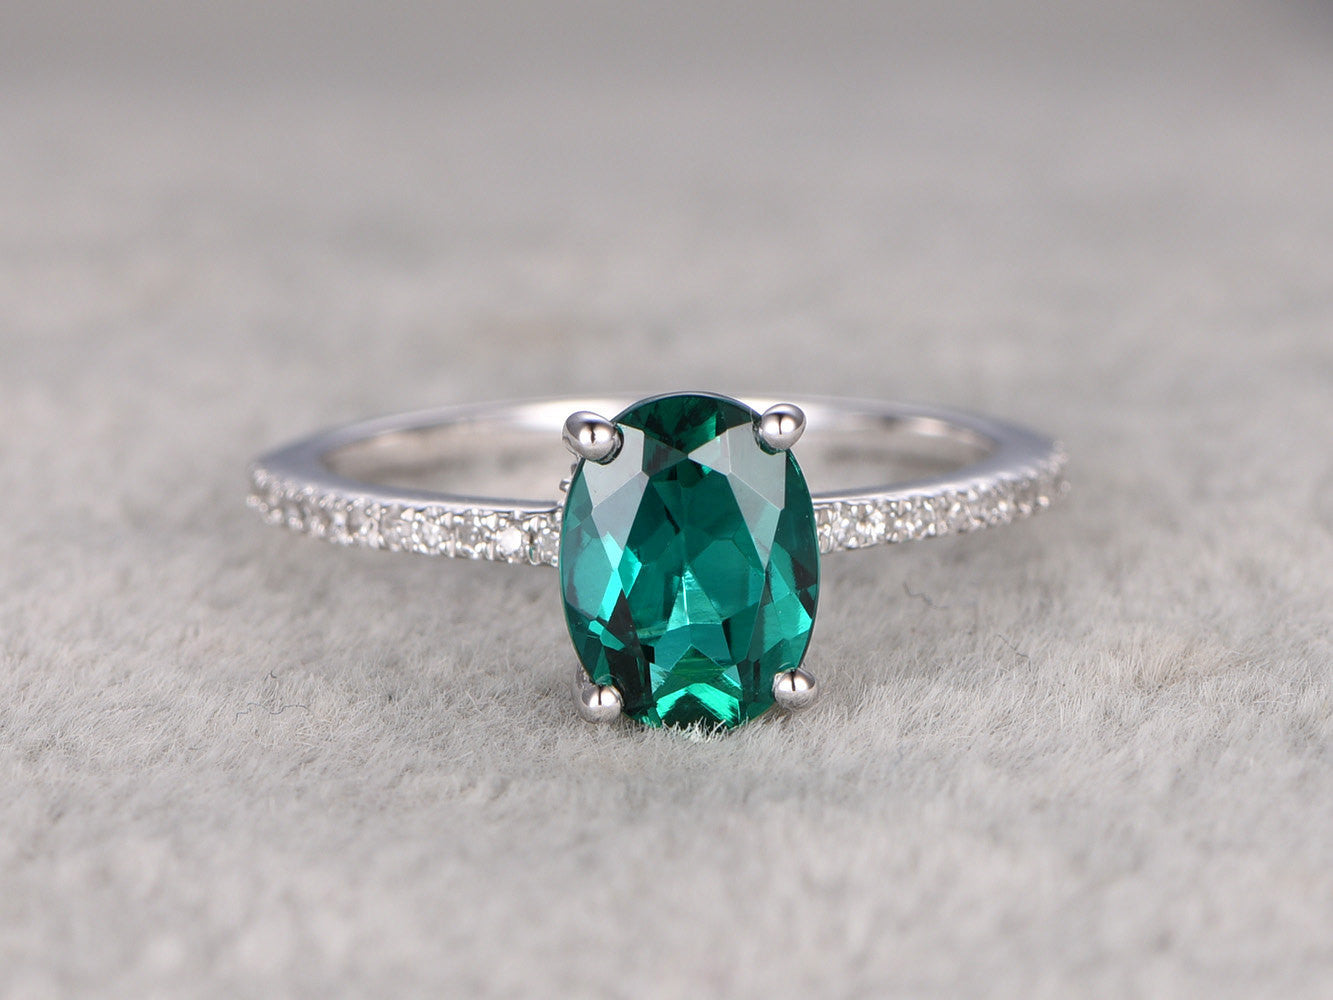 Emerald Engagement ring White gold,SI-H Diamond,wedding ring,14k,6x8mm Oval Shaped Cut,Green Treated Gemstone Promise,Anniversary Ring,Fine